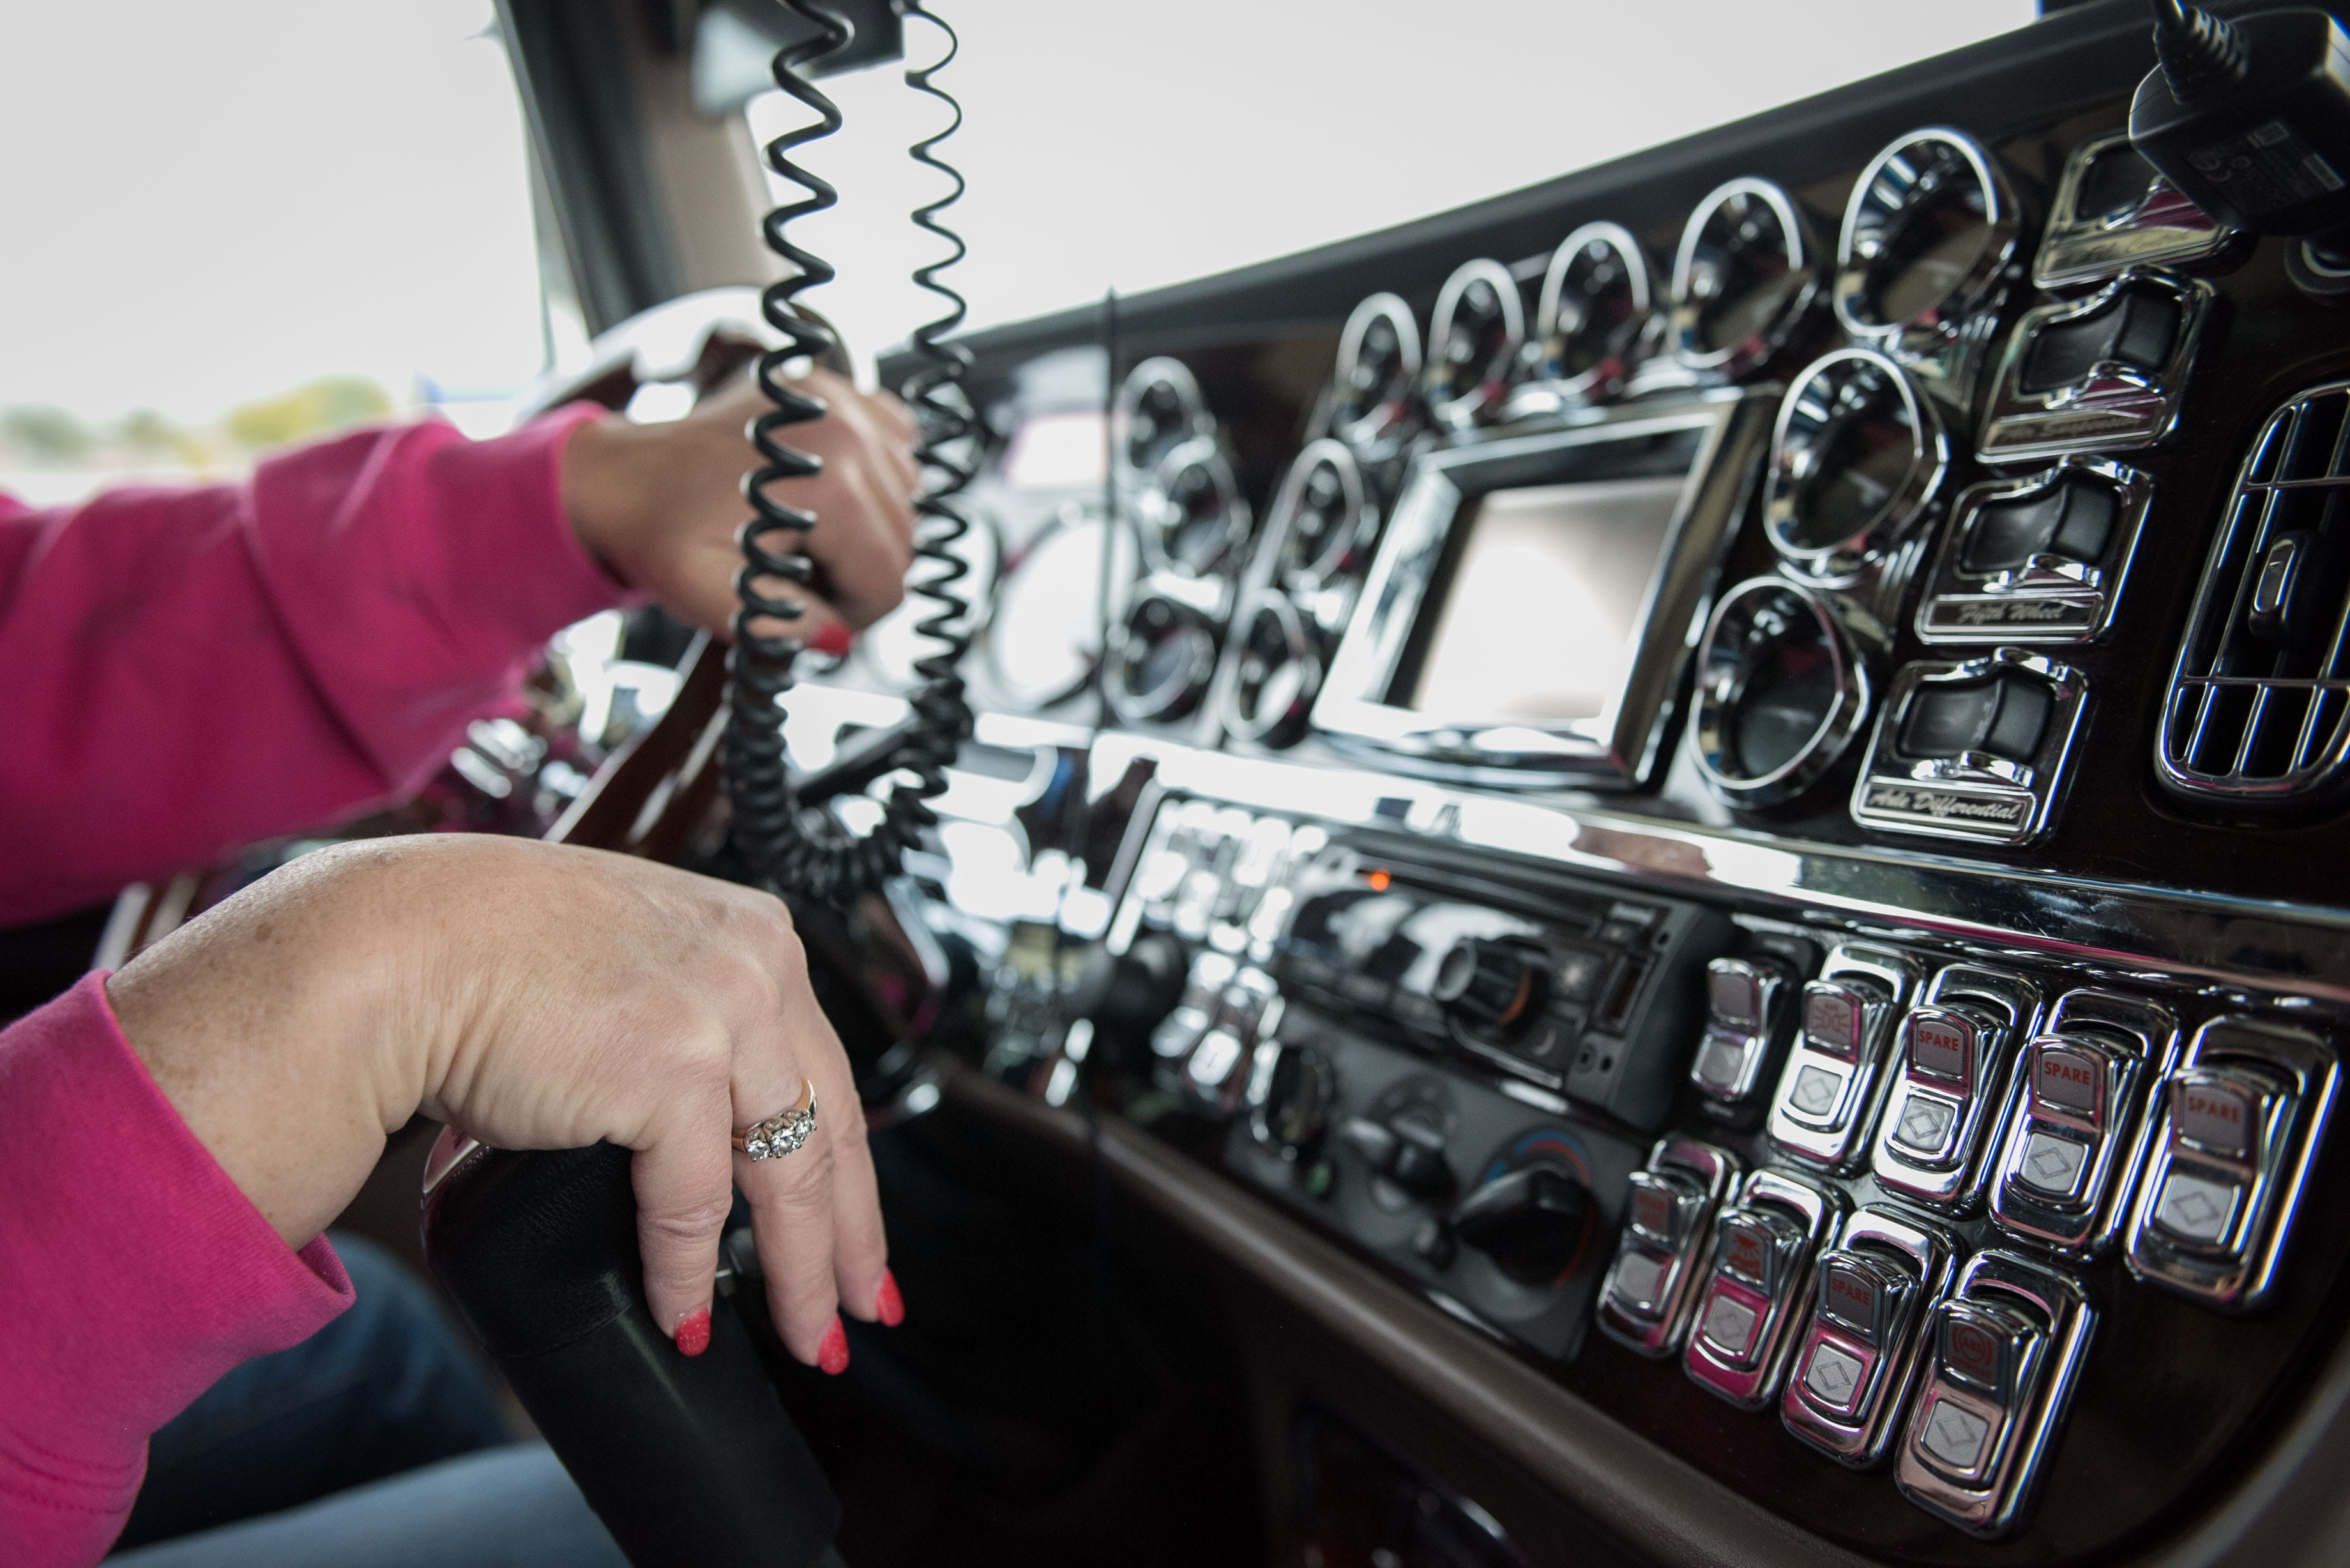 Women are changing trucking, 'my steering wheel has no clue what gender  holds it'